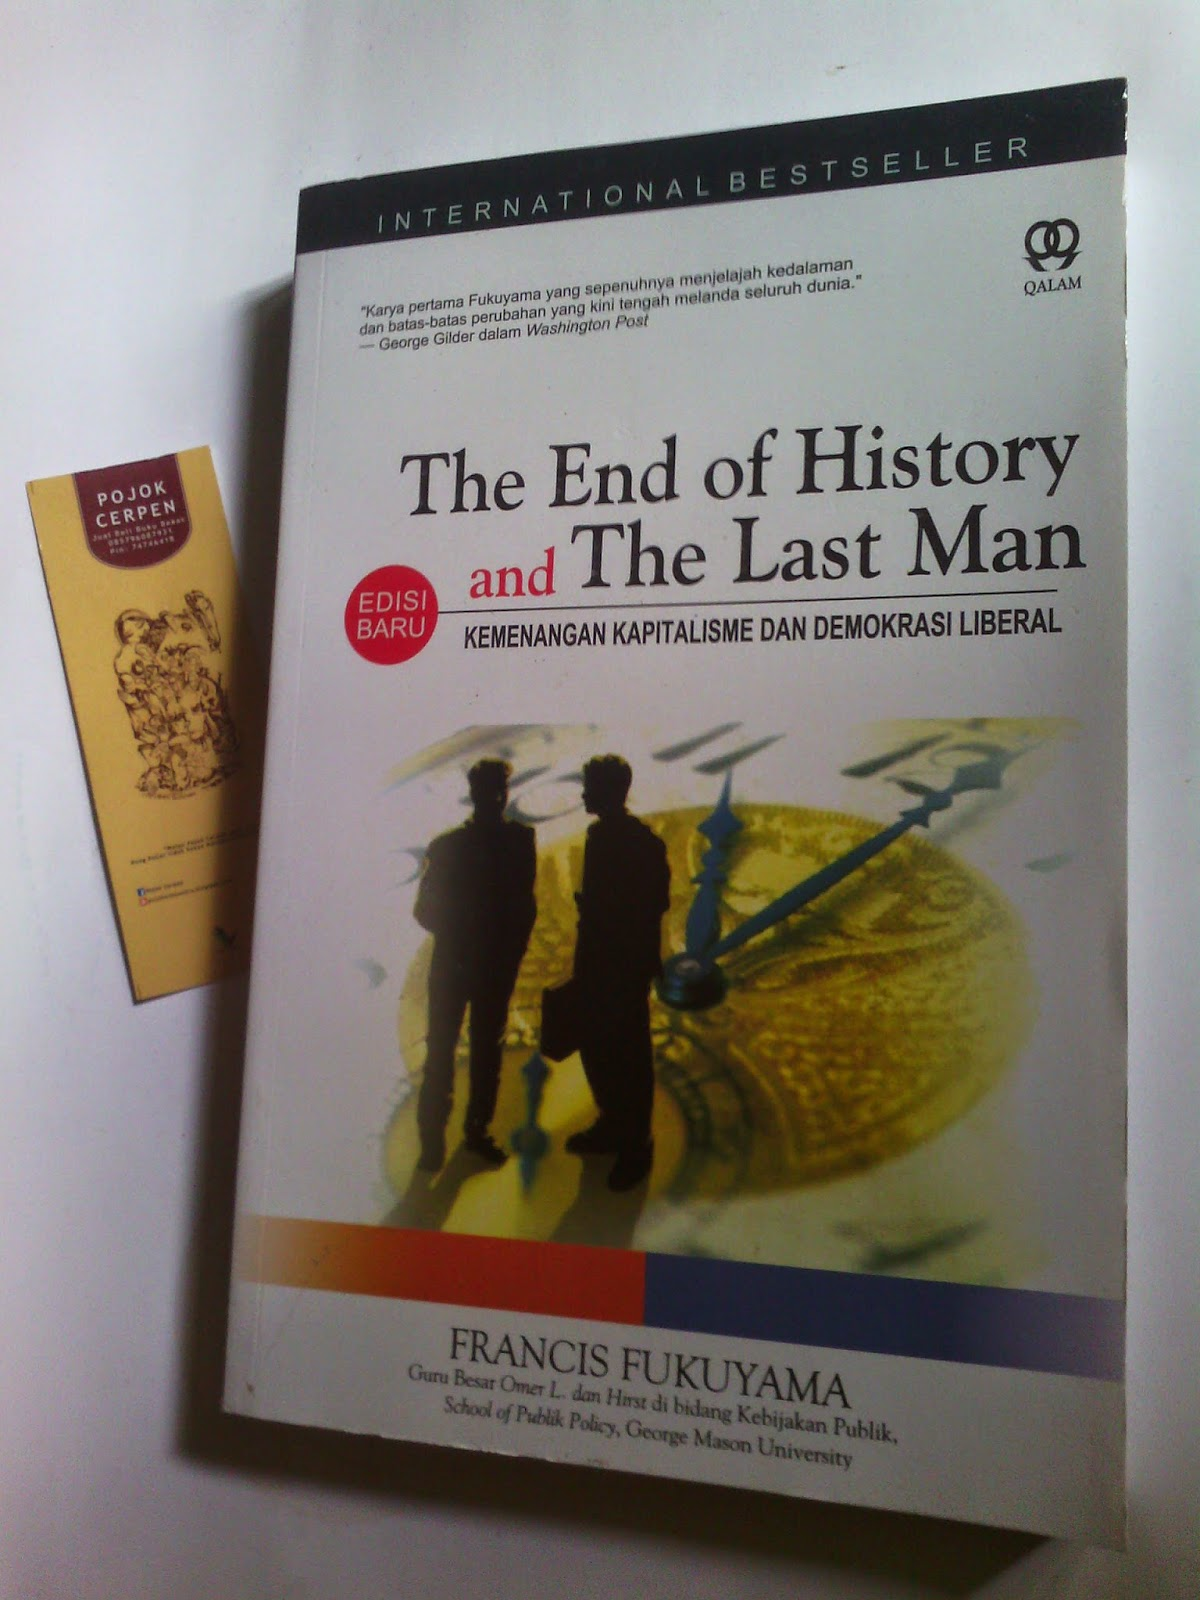 the end of history essay by francis fukuyama - in his essay, the end of history, fukuyama discusses the rise and fall of various ideologies throughout history, and the prevalence of western liberal - francis fukuyama and samuel huntington are two of the most controversial and influential modern political theorists of our times.